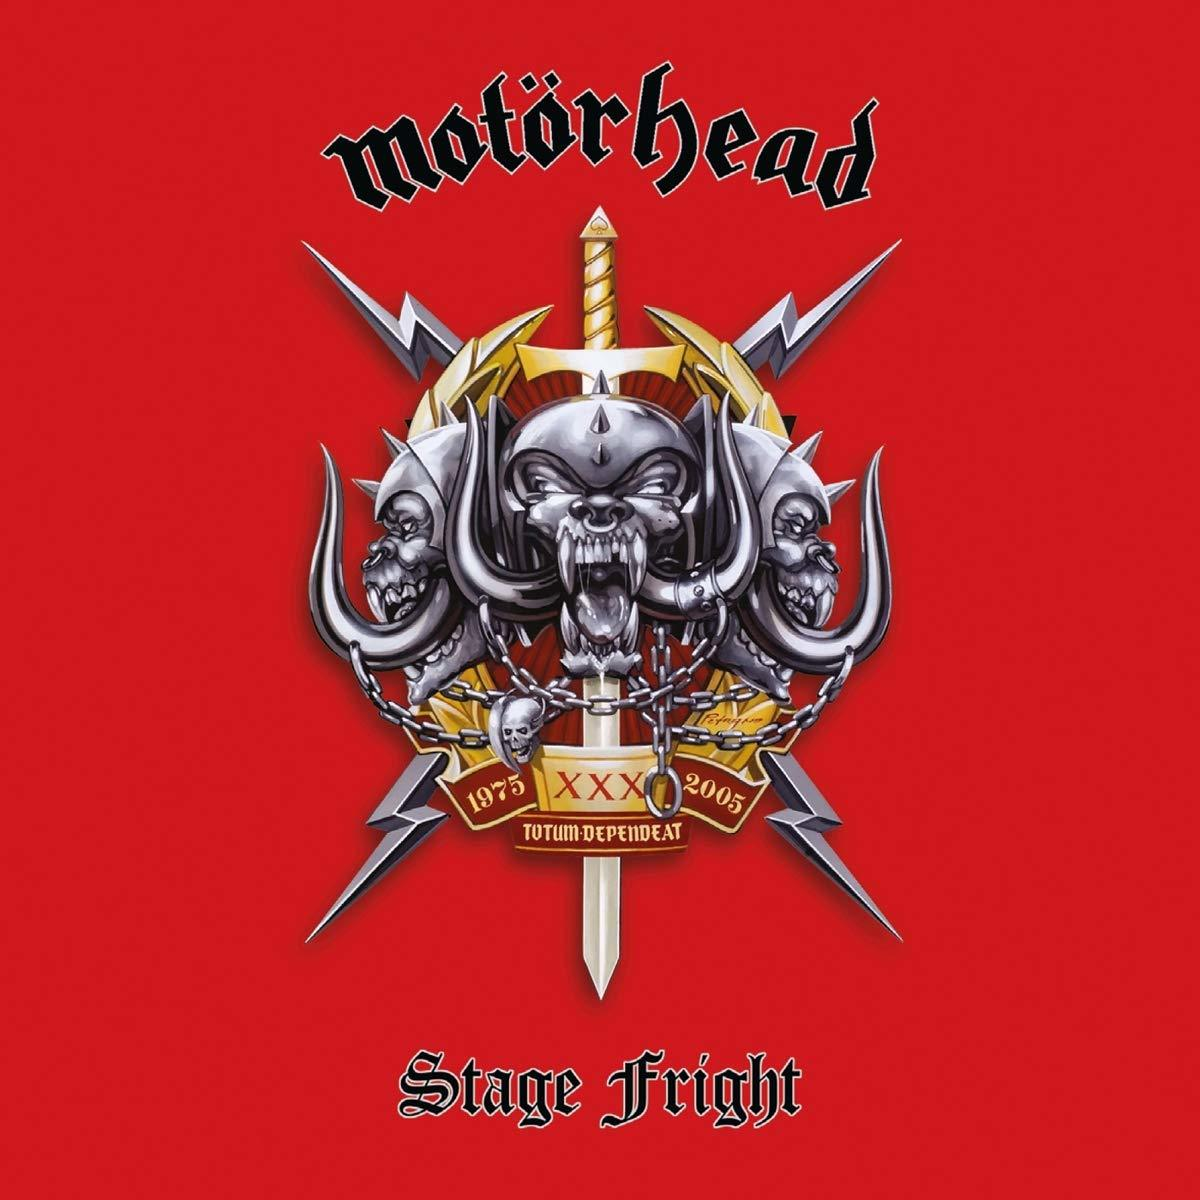 Stage Fright by Motorhead image